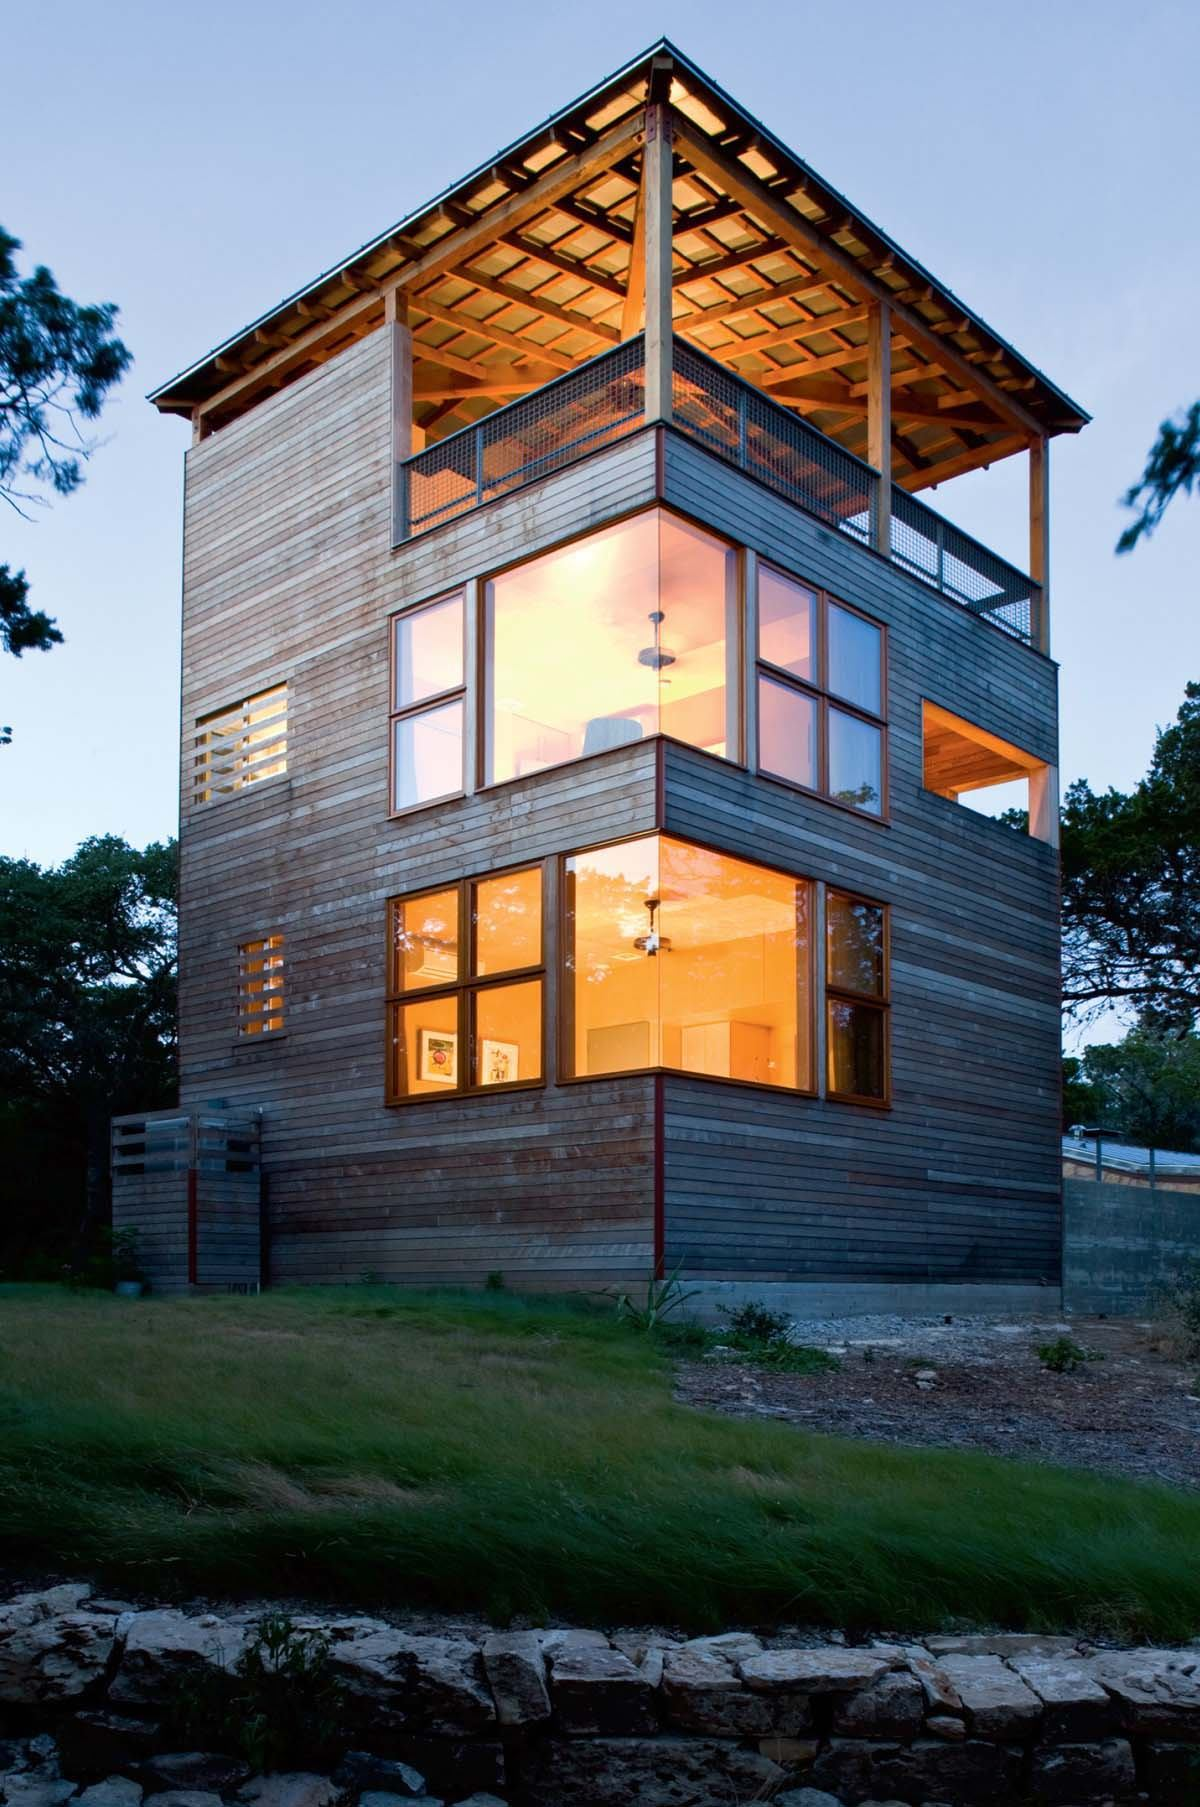 Tower House Leander Texas Residential Architect Outbuildings Architects Architecture